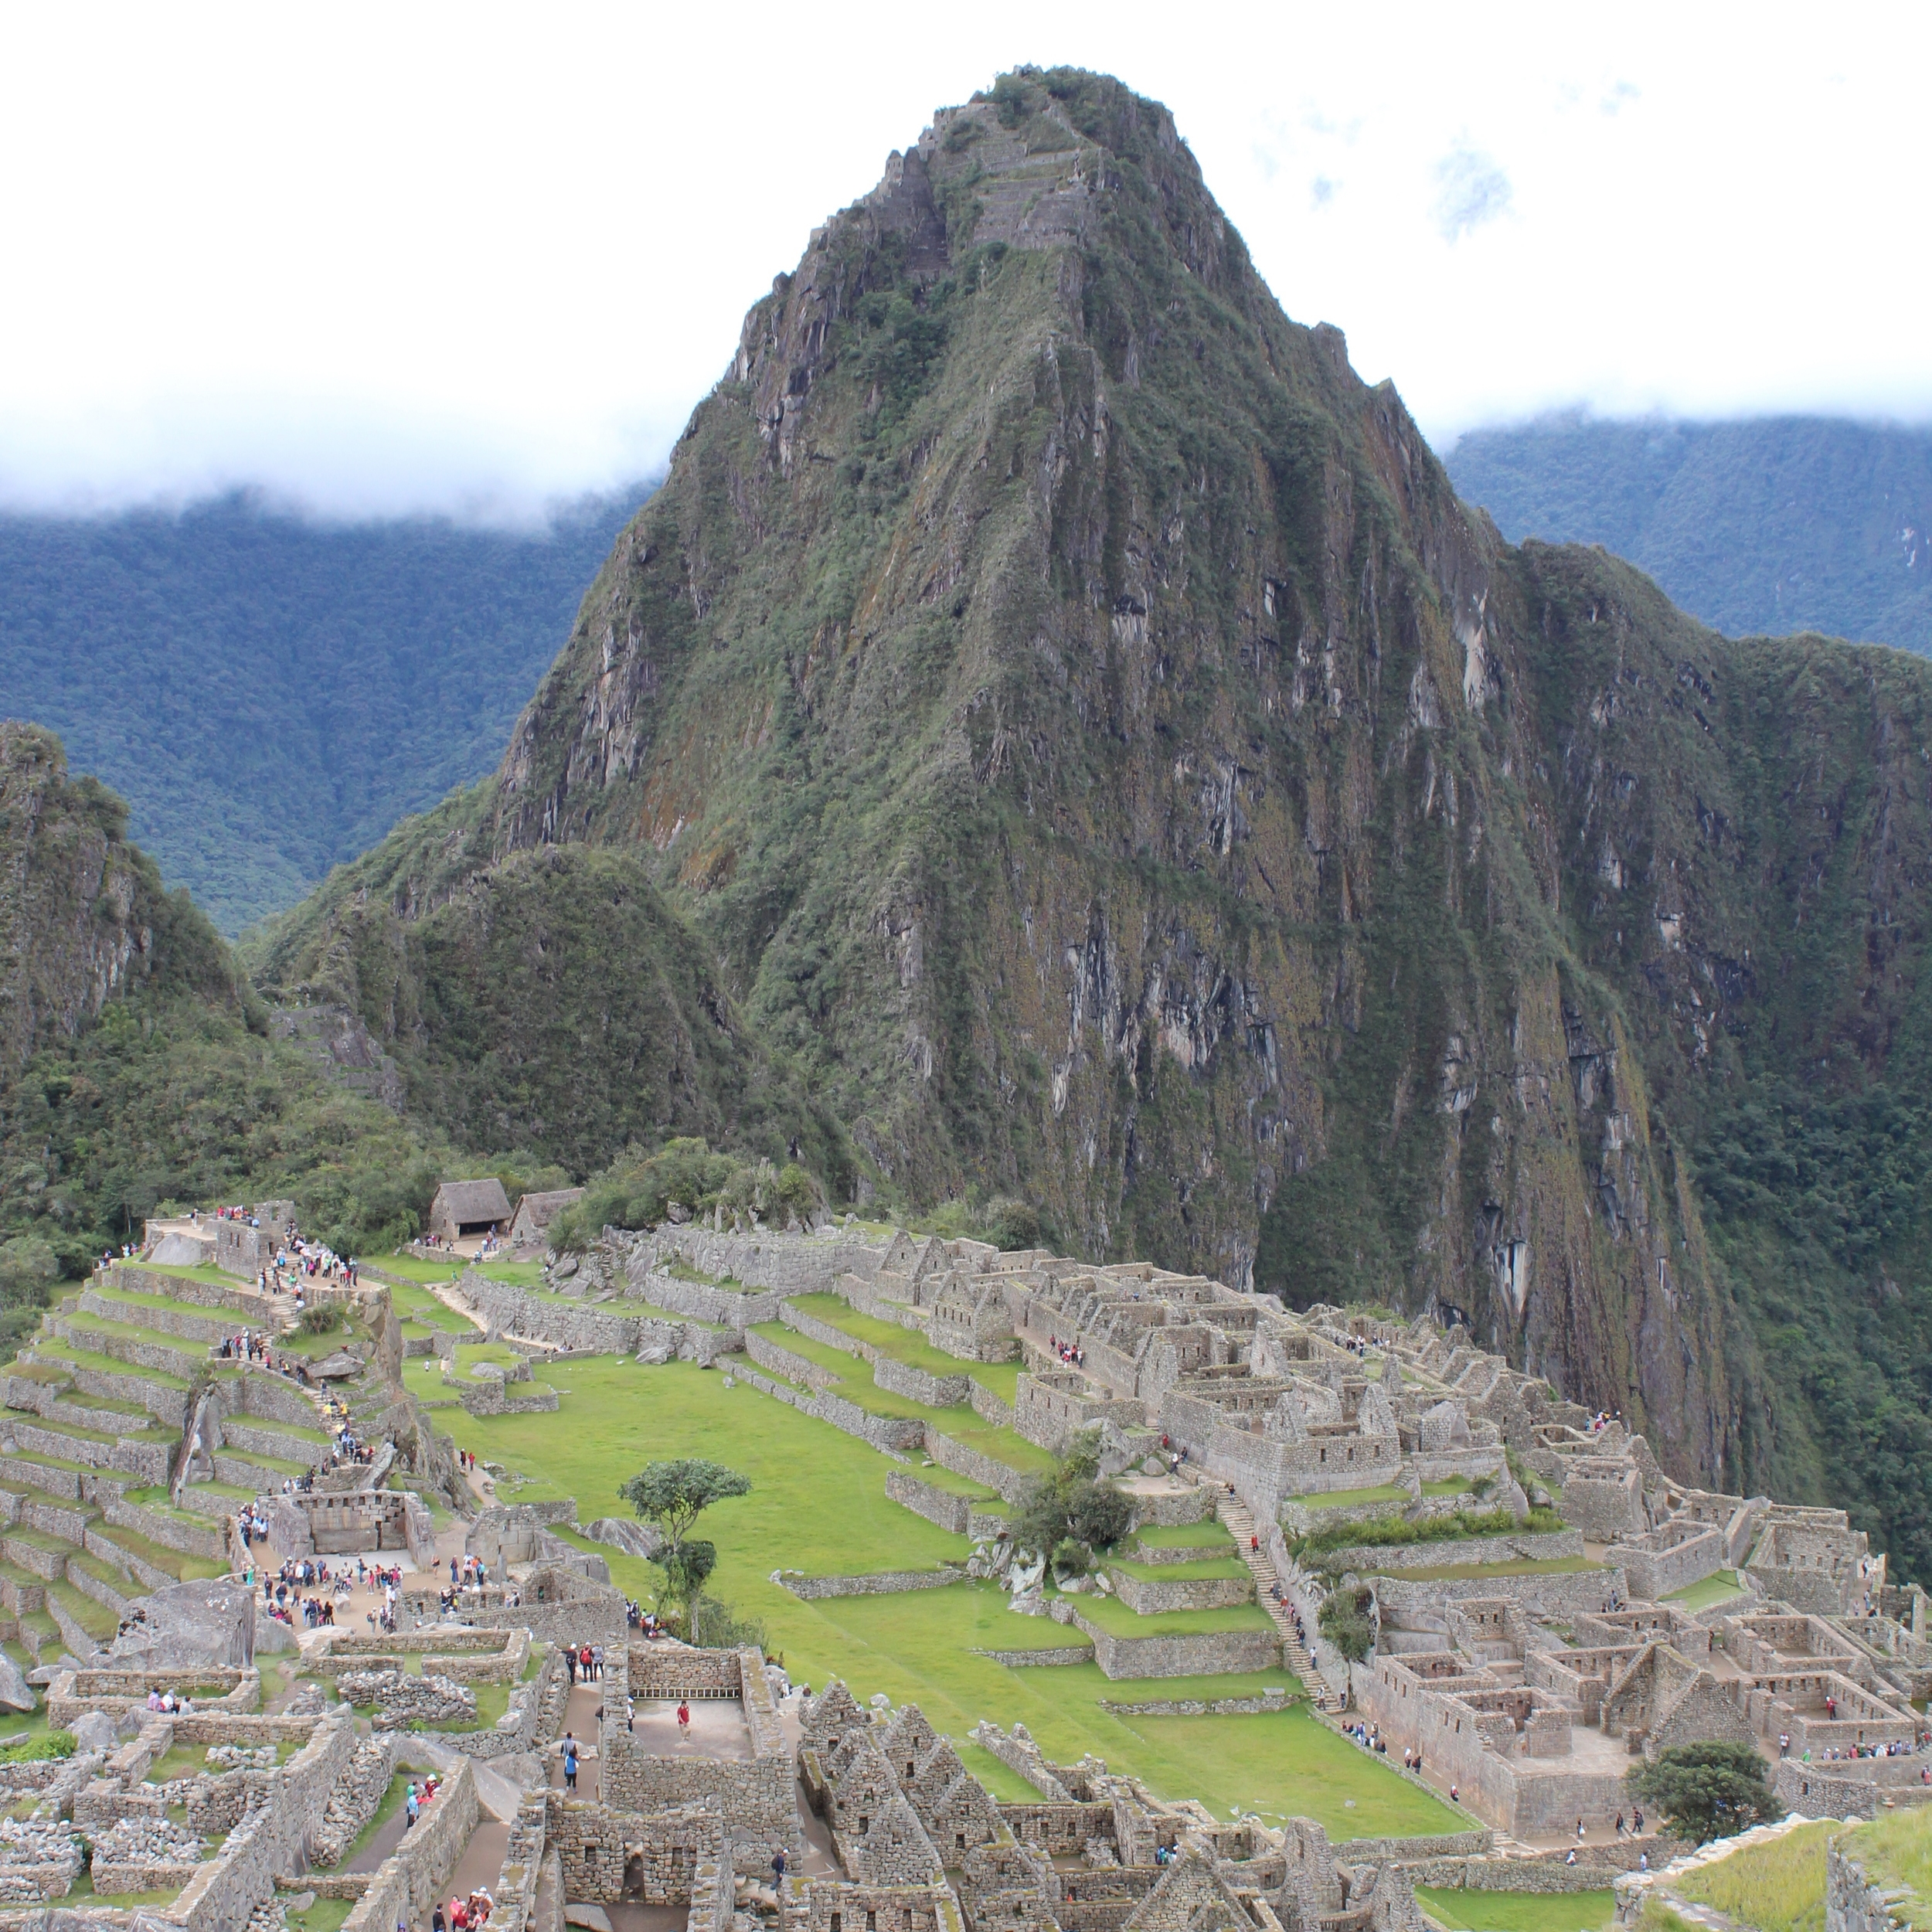 This cultural and ecologic ensemble is also known as the Historic Sanctuary of Machu Picchu. Photo: Javier Vélez Arocho